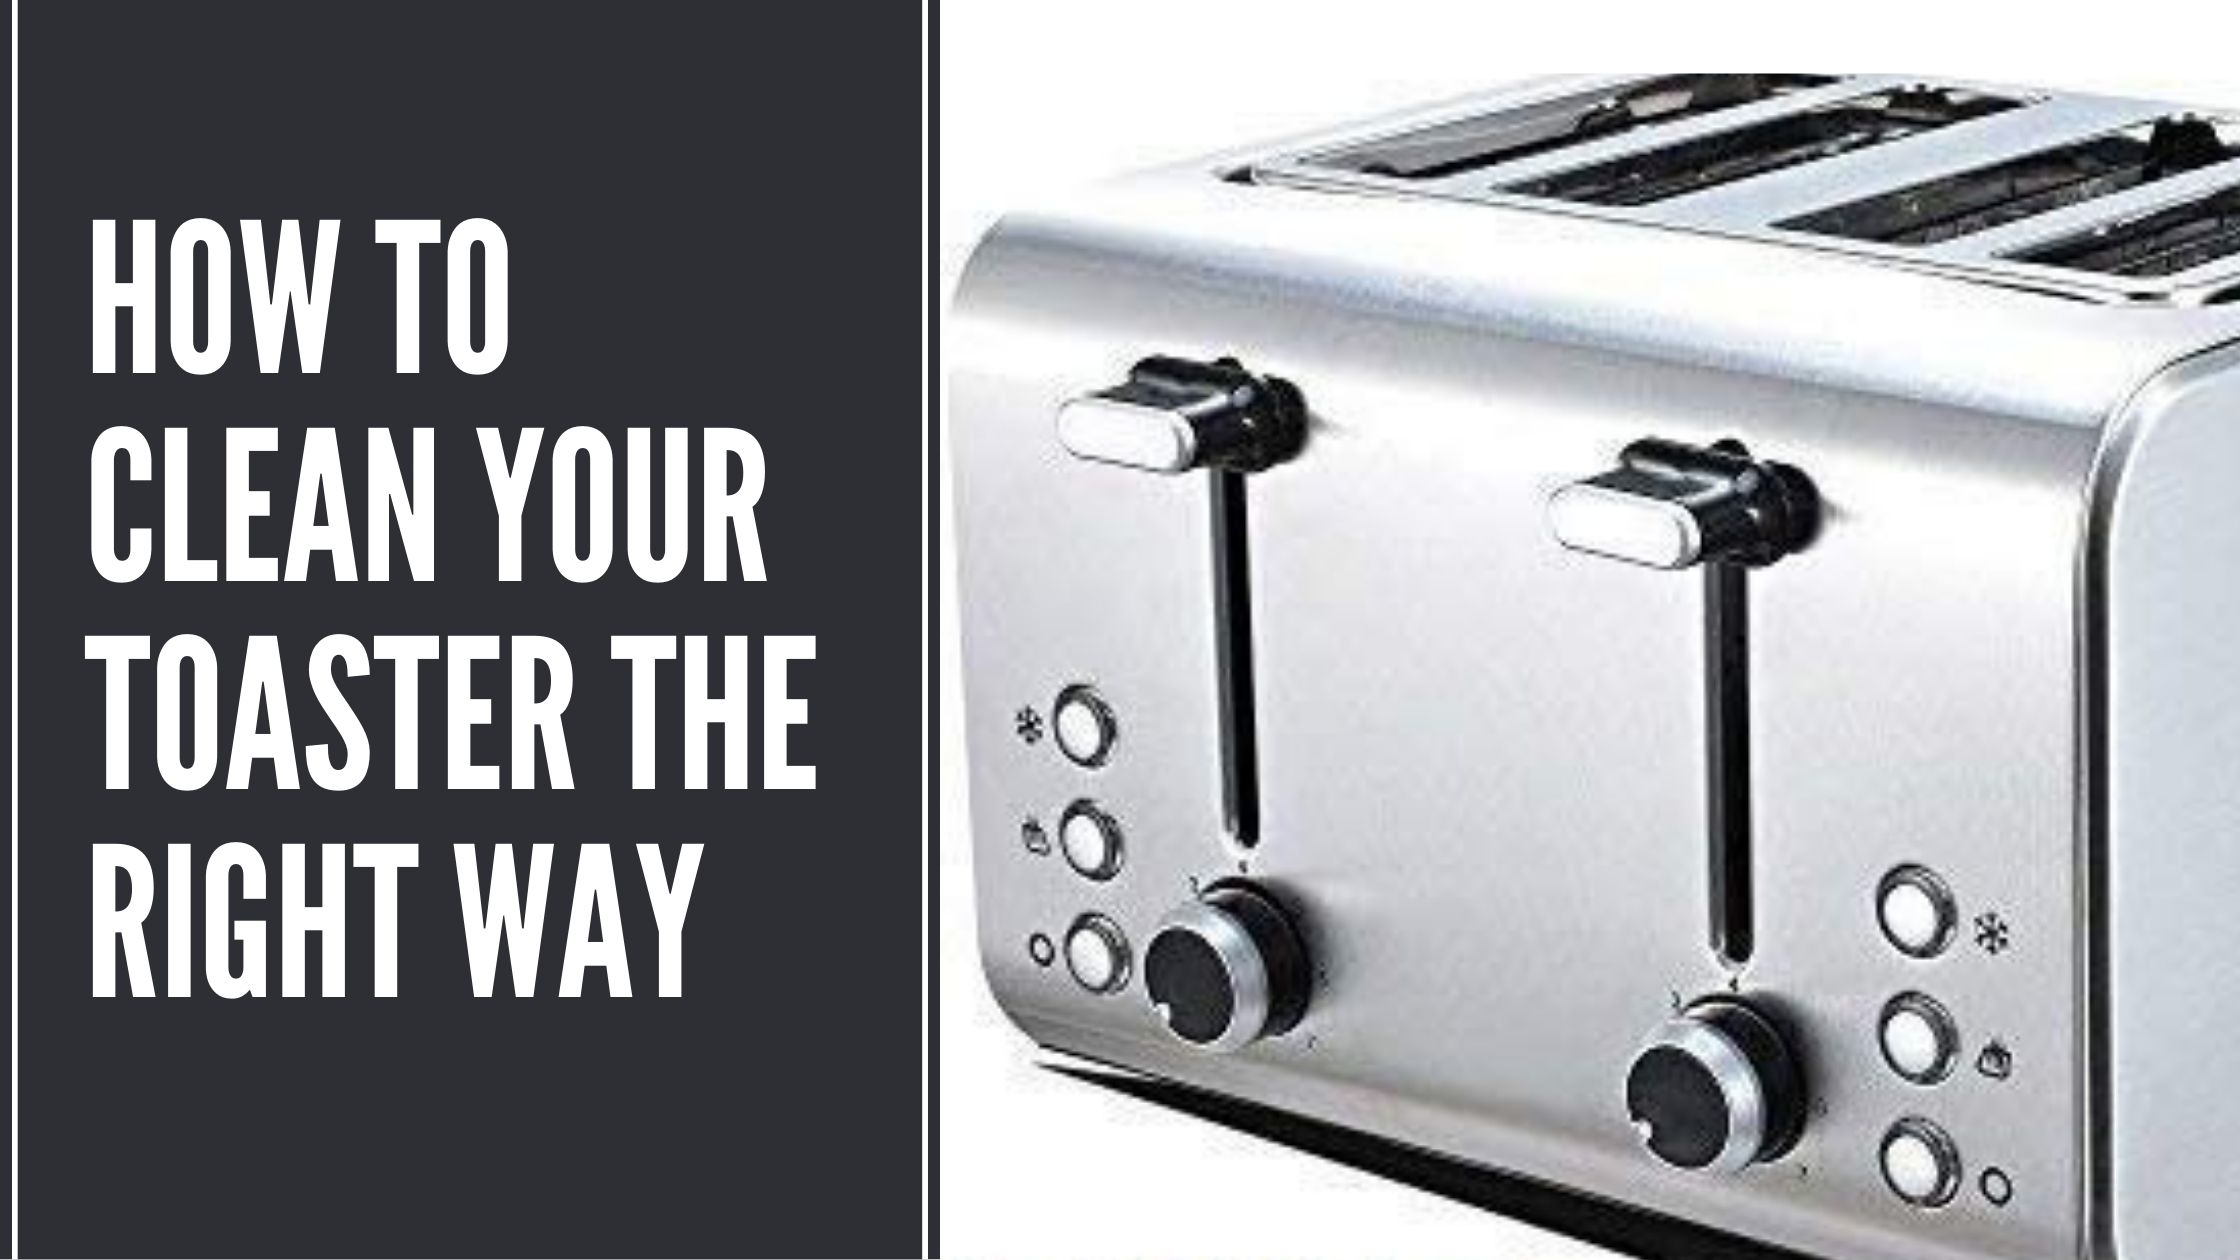 How to Clean Your Toaster the Right Way